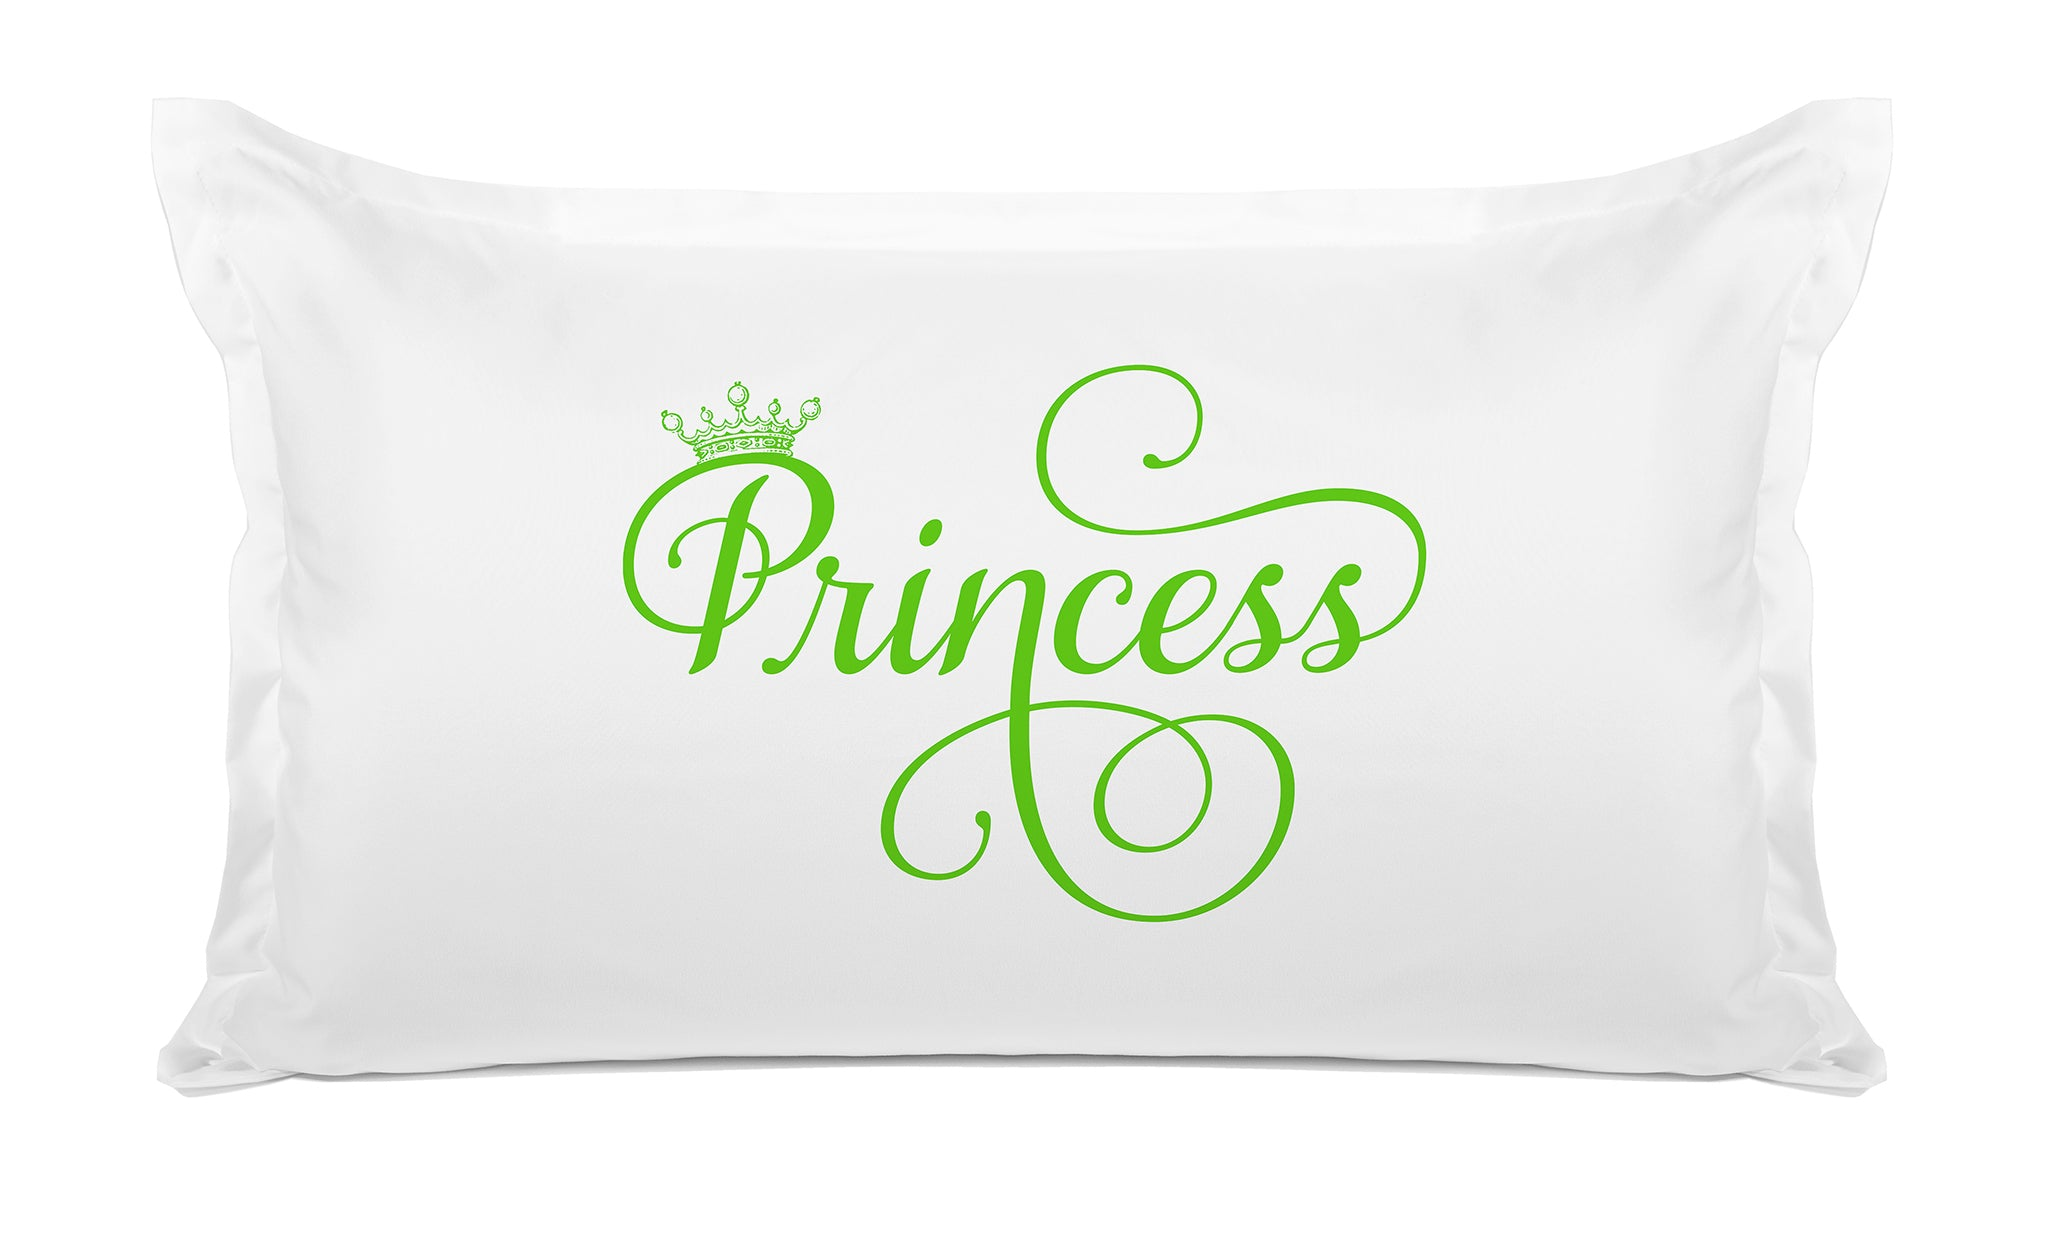 Princess Vintage Pillow case Di Lewis Bedroom Decor